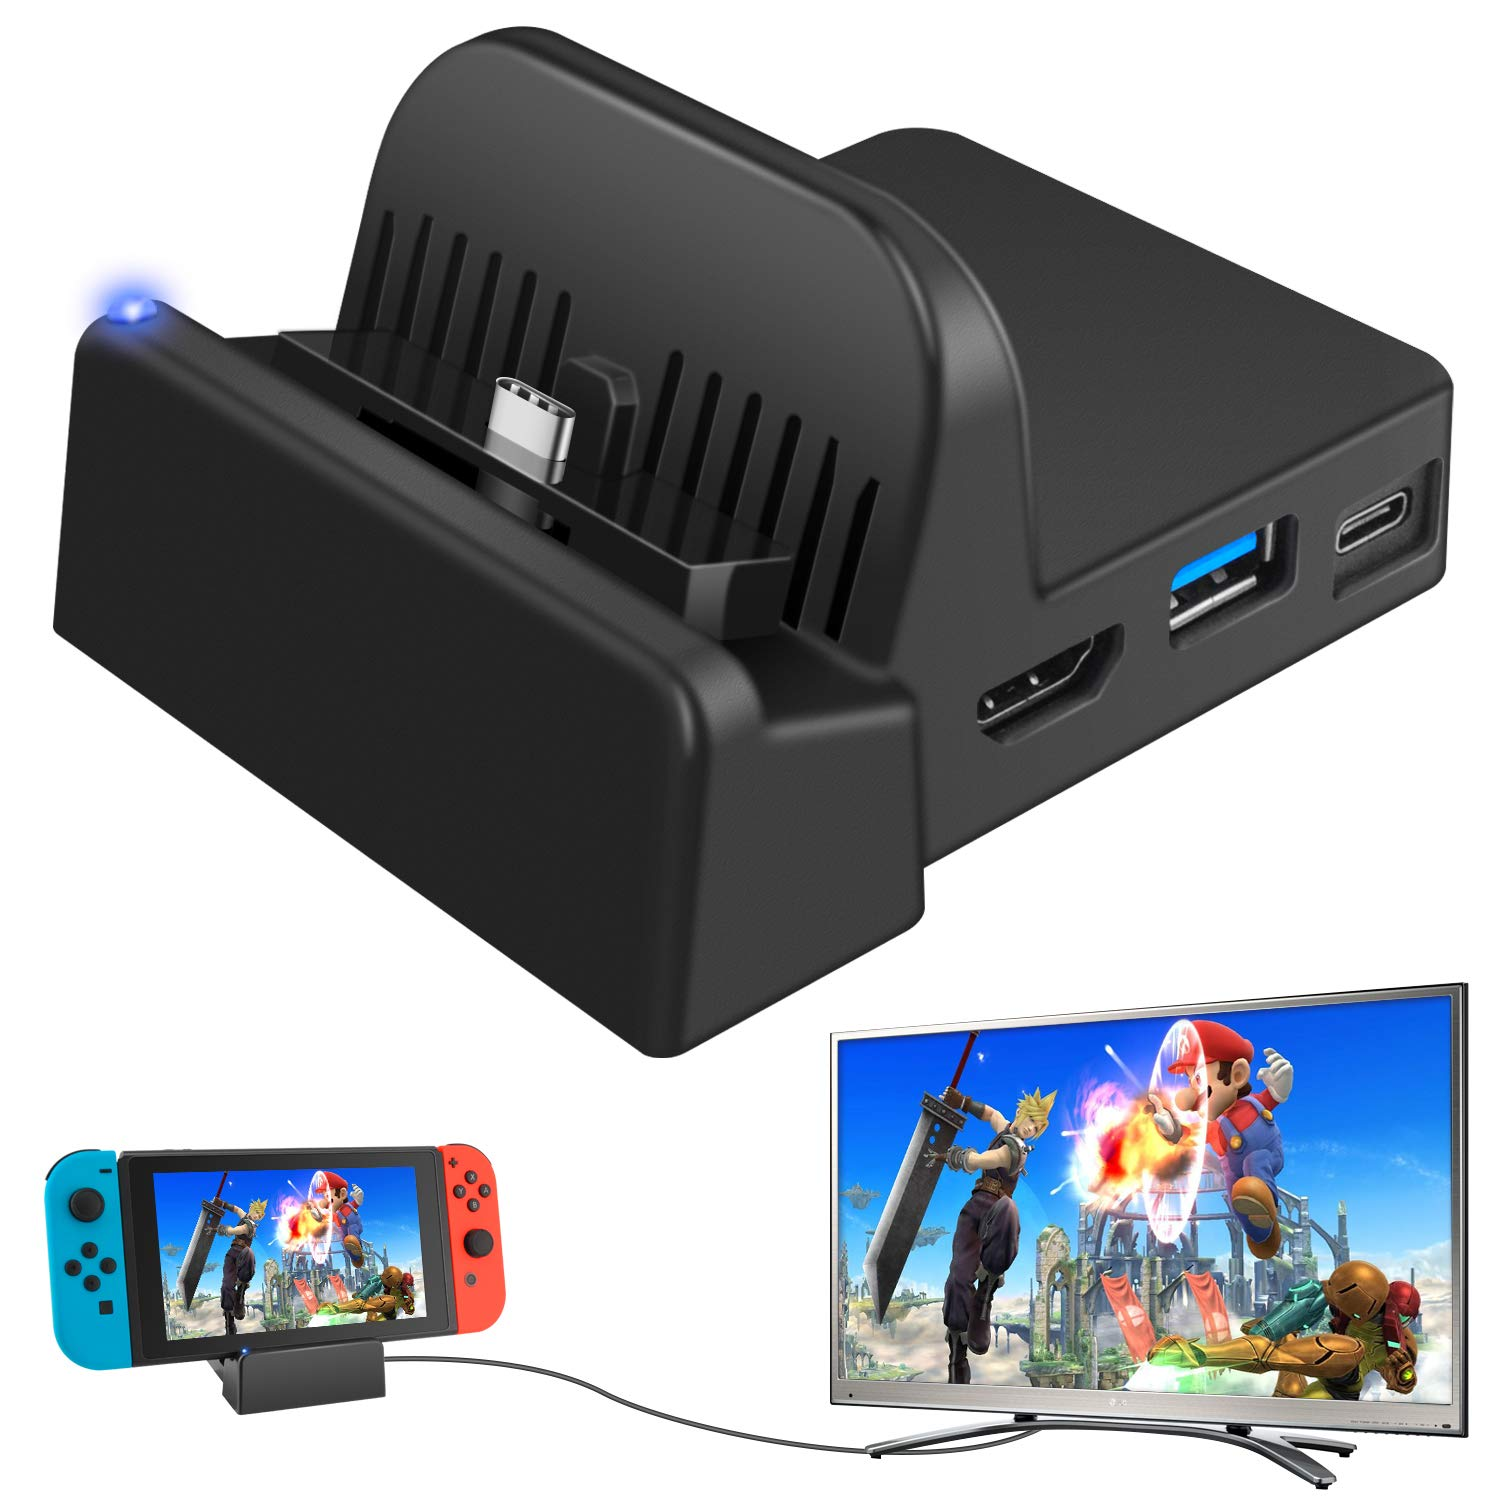 Ponkor Docking Station for Nintendo Switch, Charging Dock 4K HDMI TV Adapter Charger Set Replacement compatible with Official Nintendo Switch Dock (No Charging Cable)